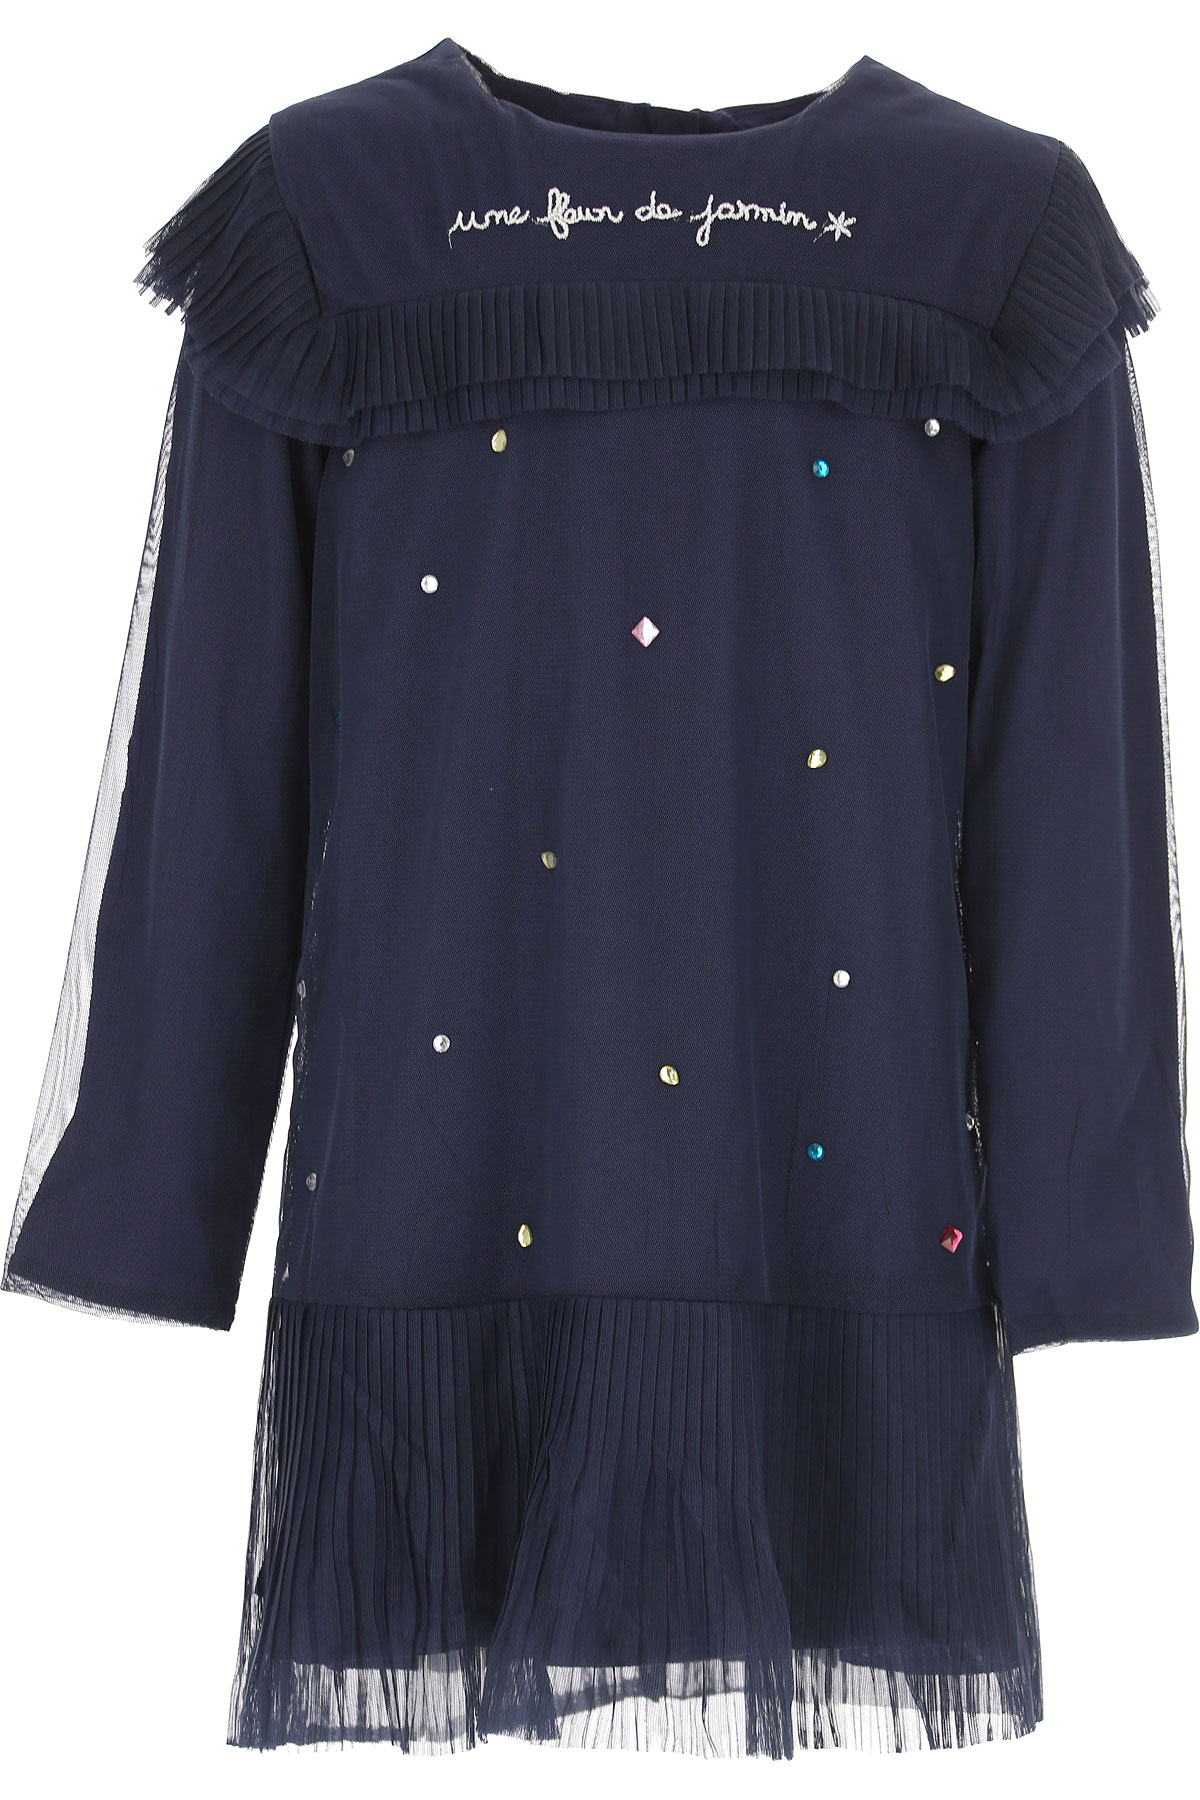 Image of Billieblush Girls Dress, Blue, polyester, 2017, 10Y 4Y 6Y 8Y